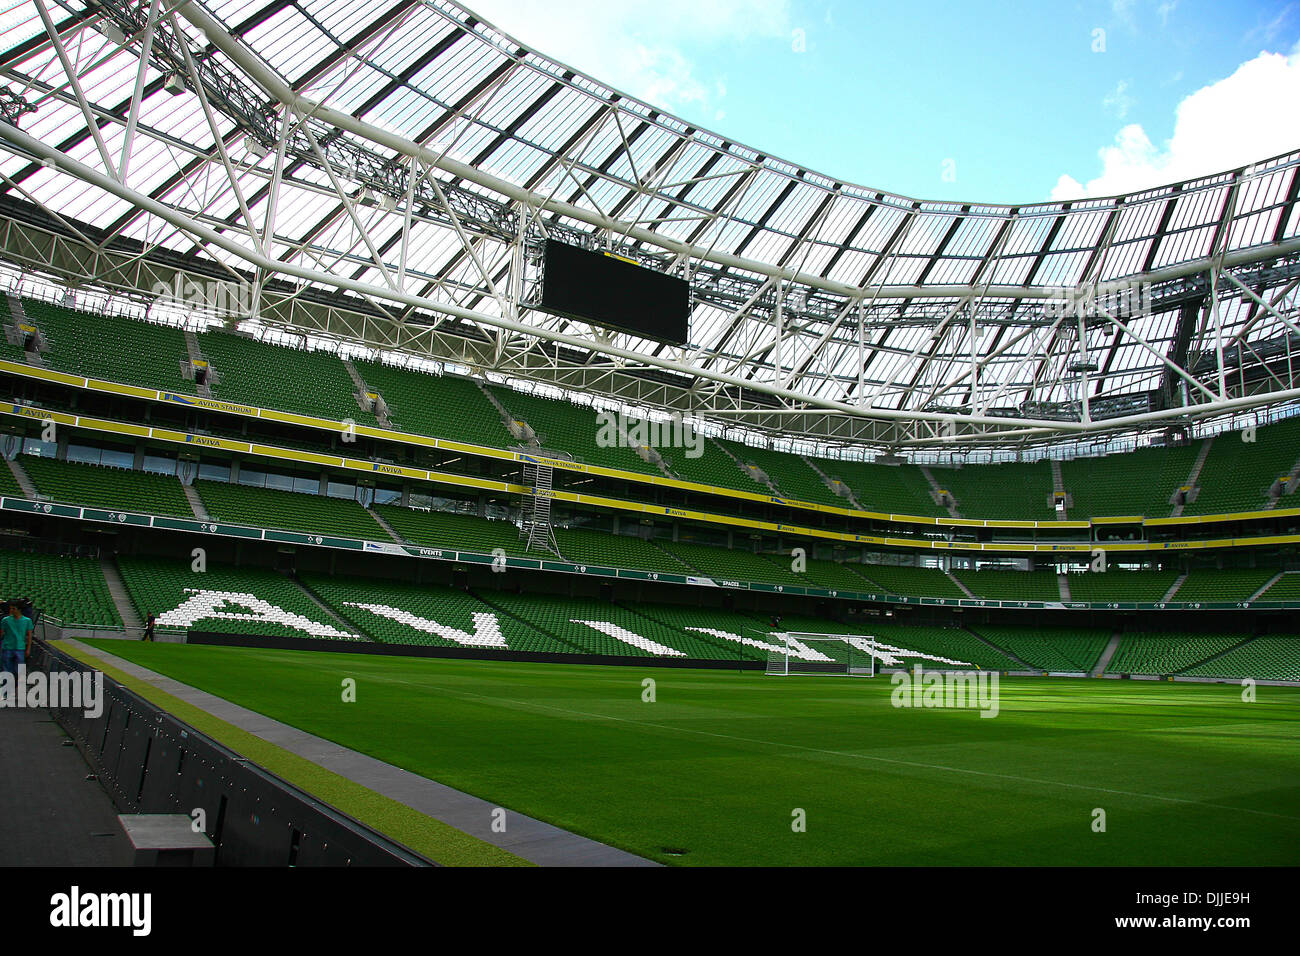 Aug. 10, 2010 - Dublin, Ireland - A general view of the newly completed Aviva Stadium in Dublin, Ireland. The stadium has an all-seater capacity of 50,000 and is home to its chief tenants: the Irish rugby union team and the Republic of Ireland national football team. The stadium is Ireland's first, and only, UEFA Elite Stadium and in 2011, it will host the Europa League Final (Cred - Stock Image